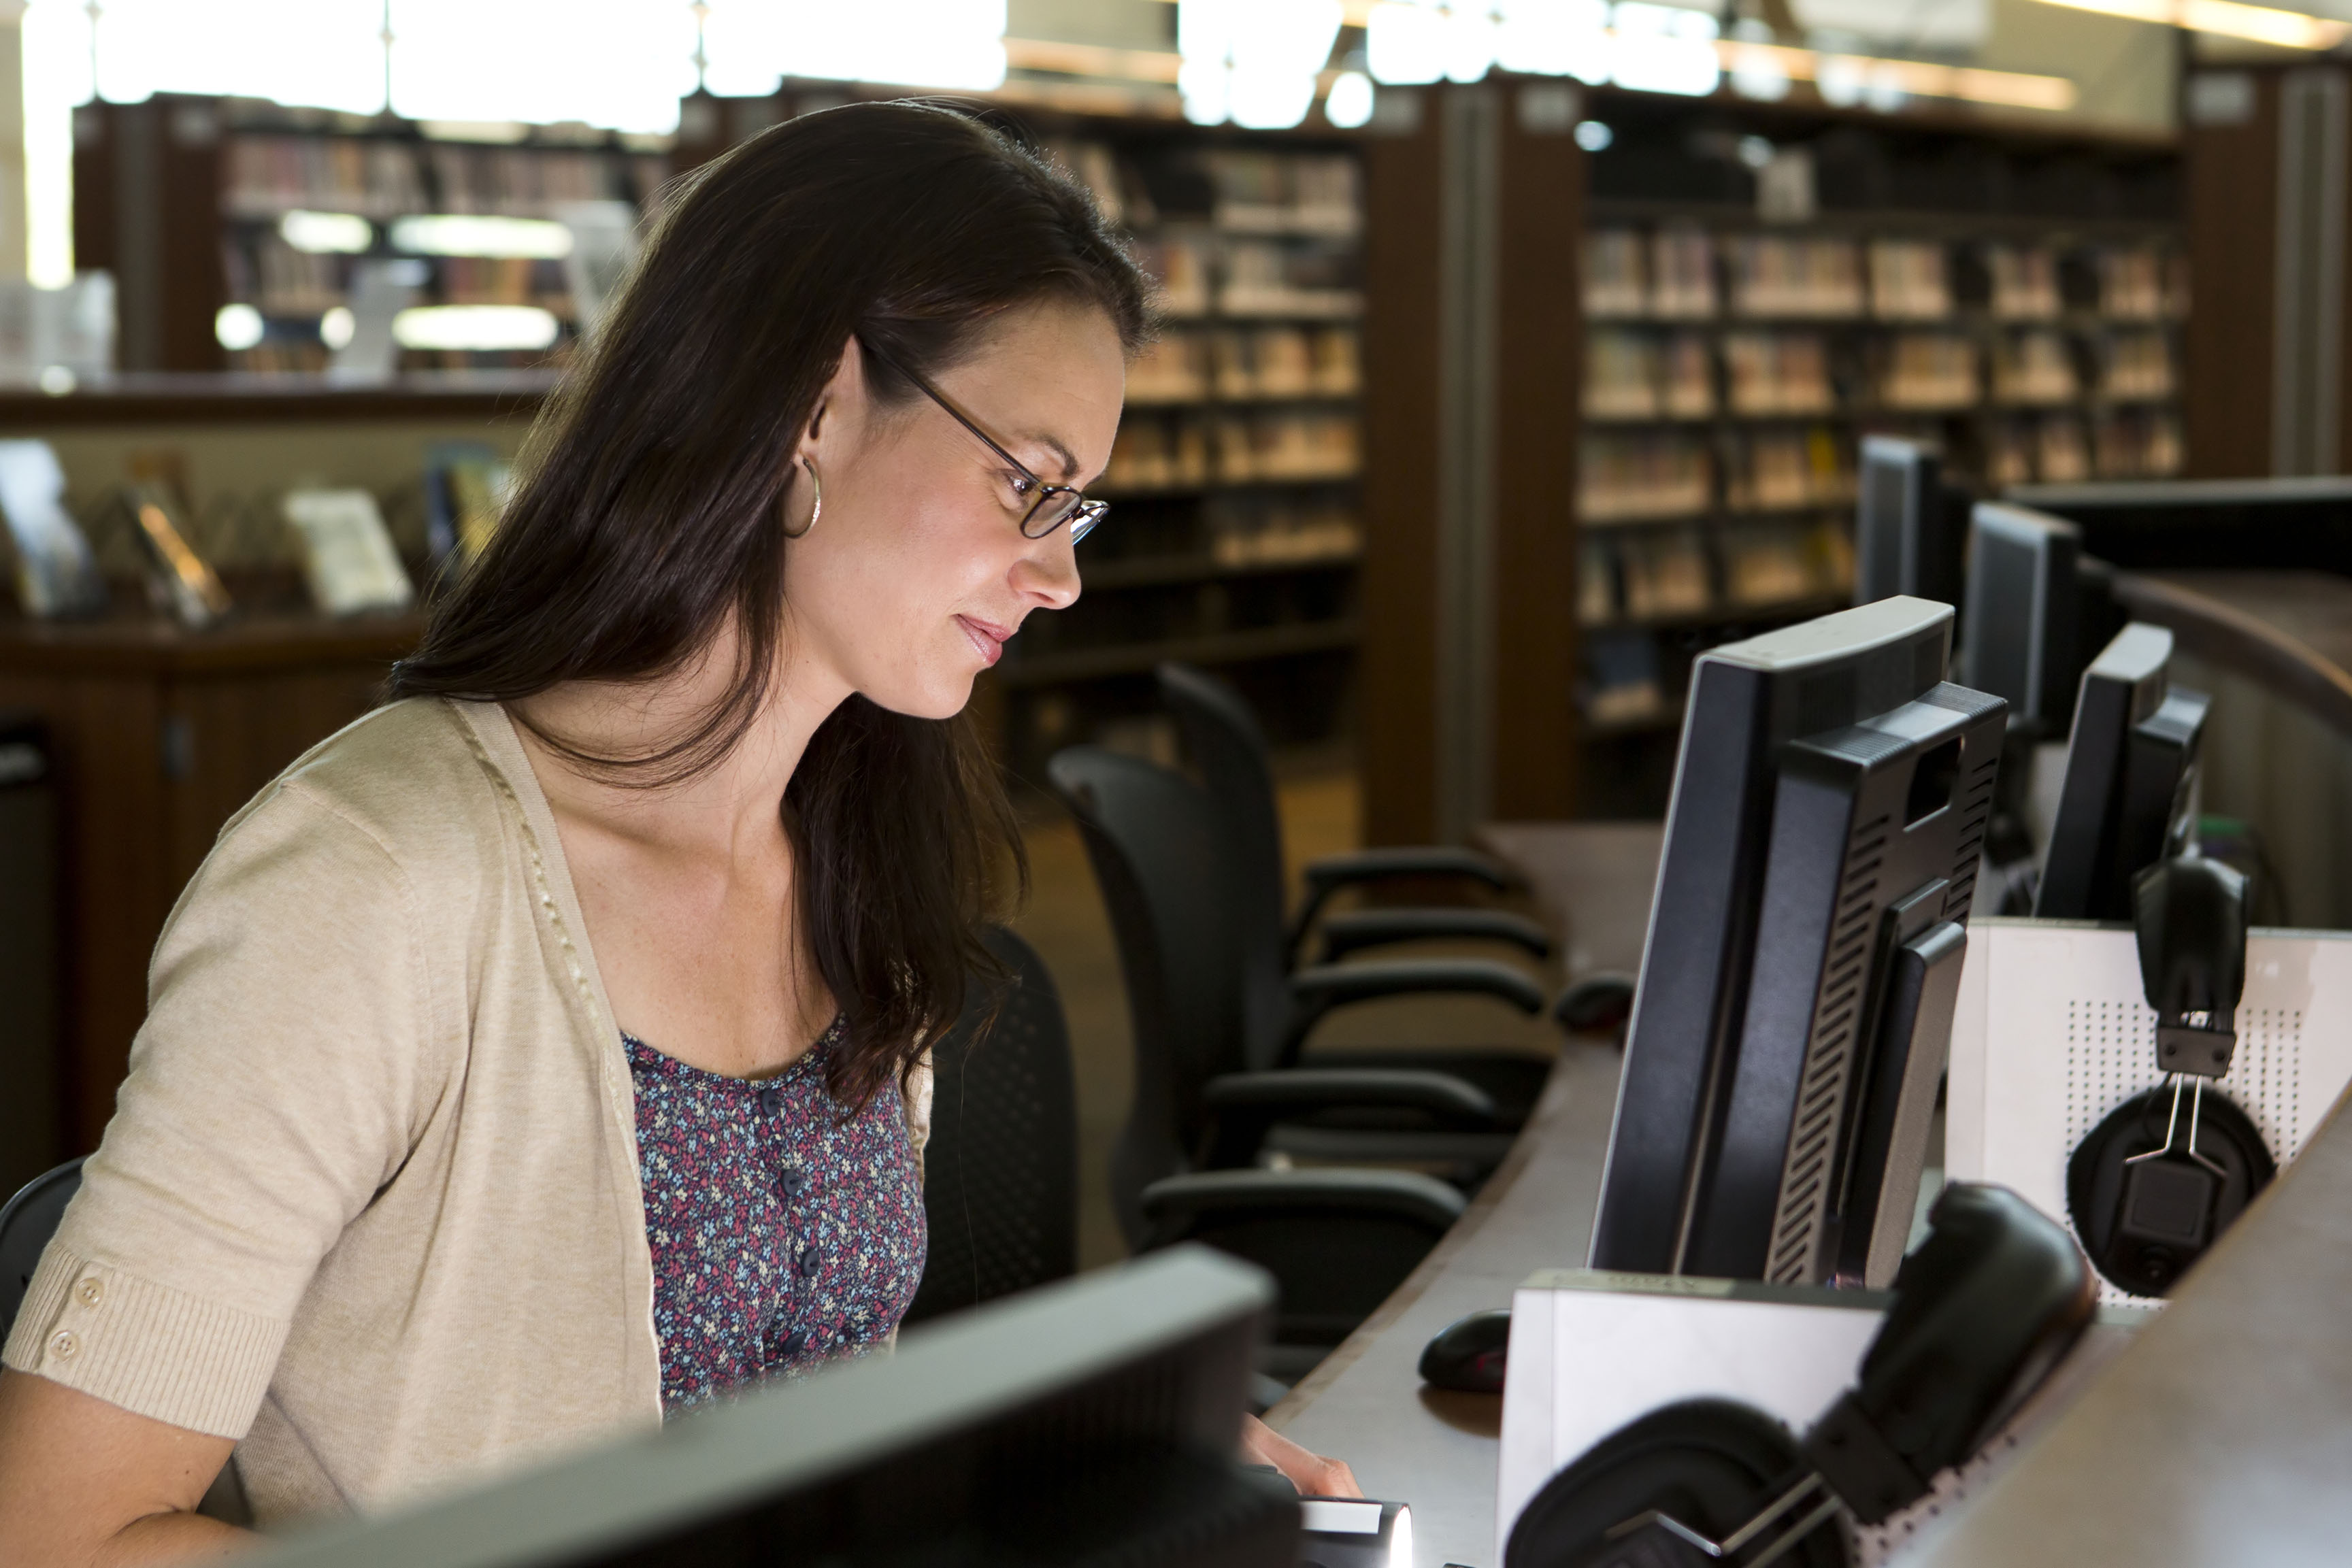 woman with computer in library